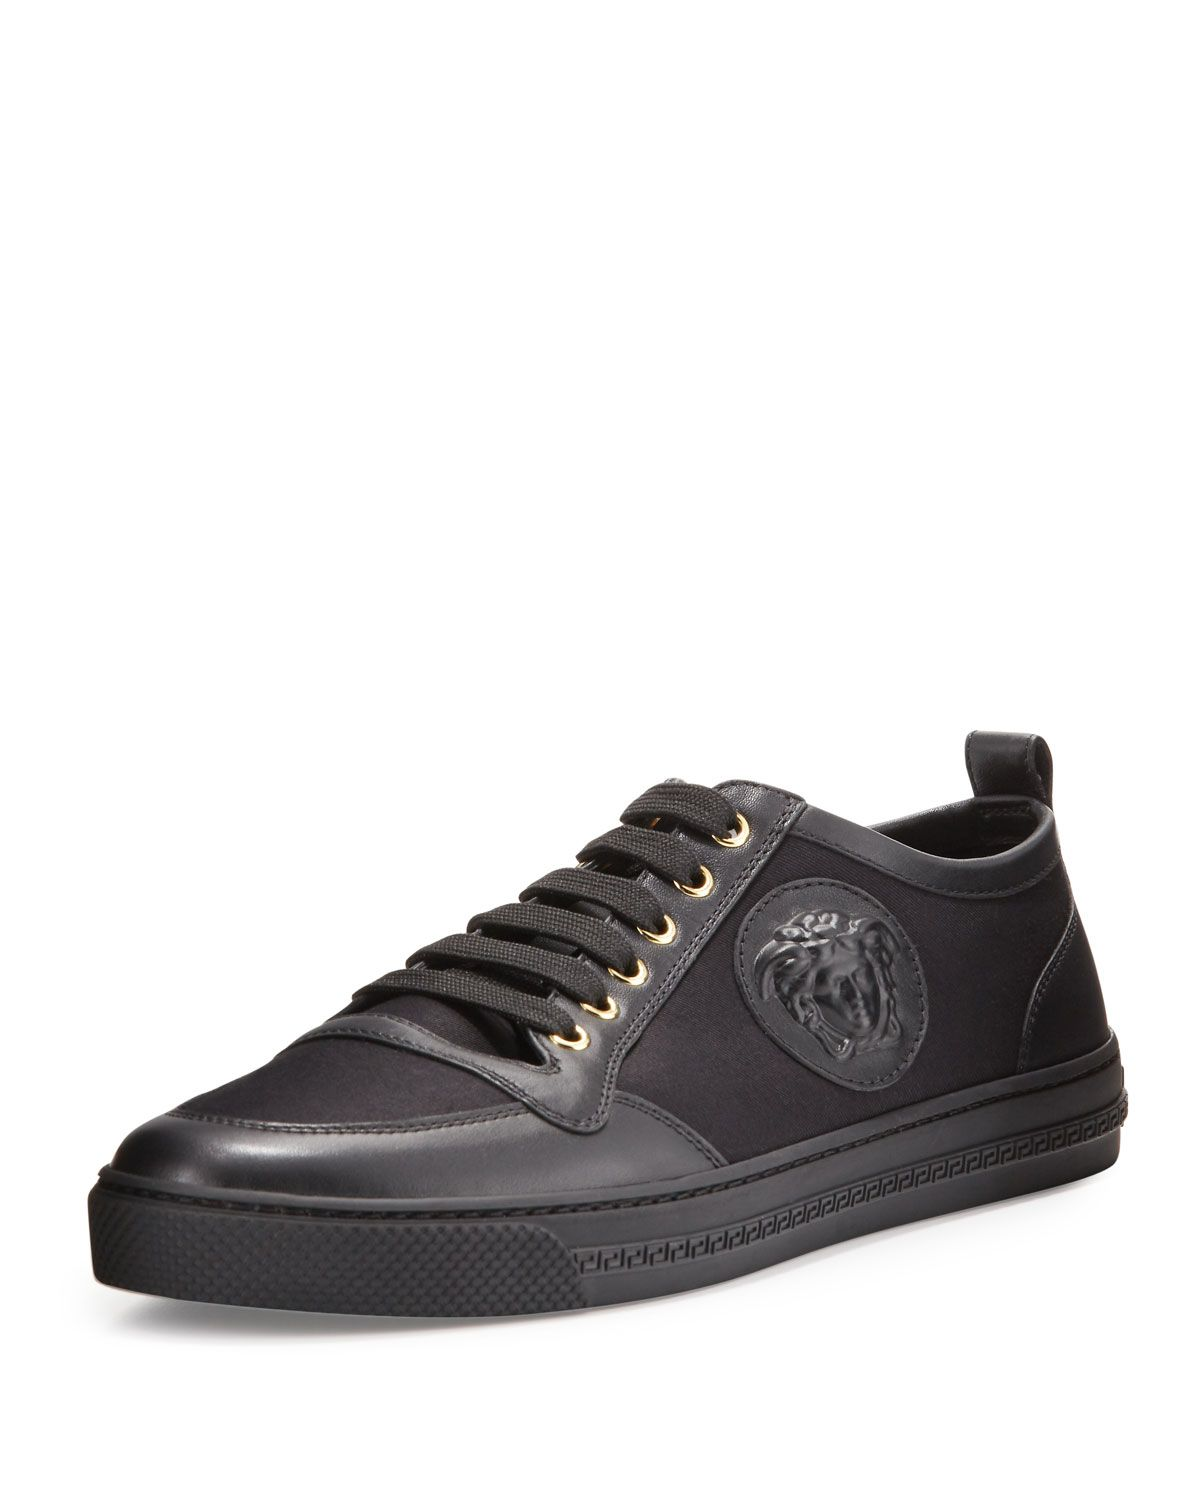 51874b9b Leather/Canvas Low-Top Sneaker Black | *Apparel & Accessories ...